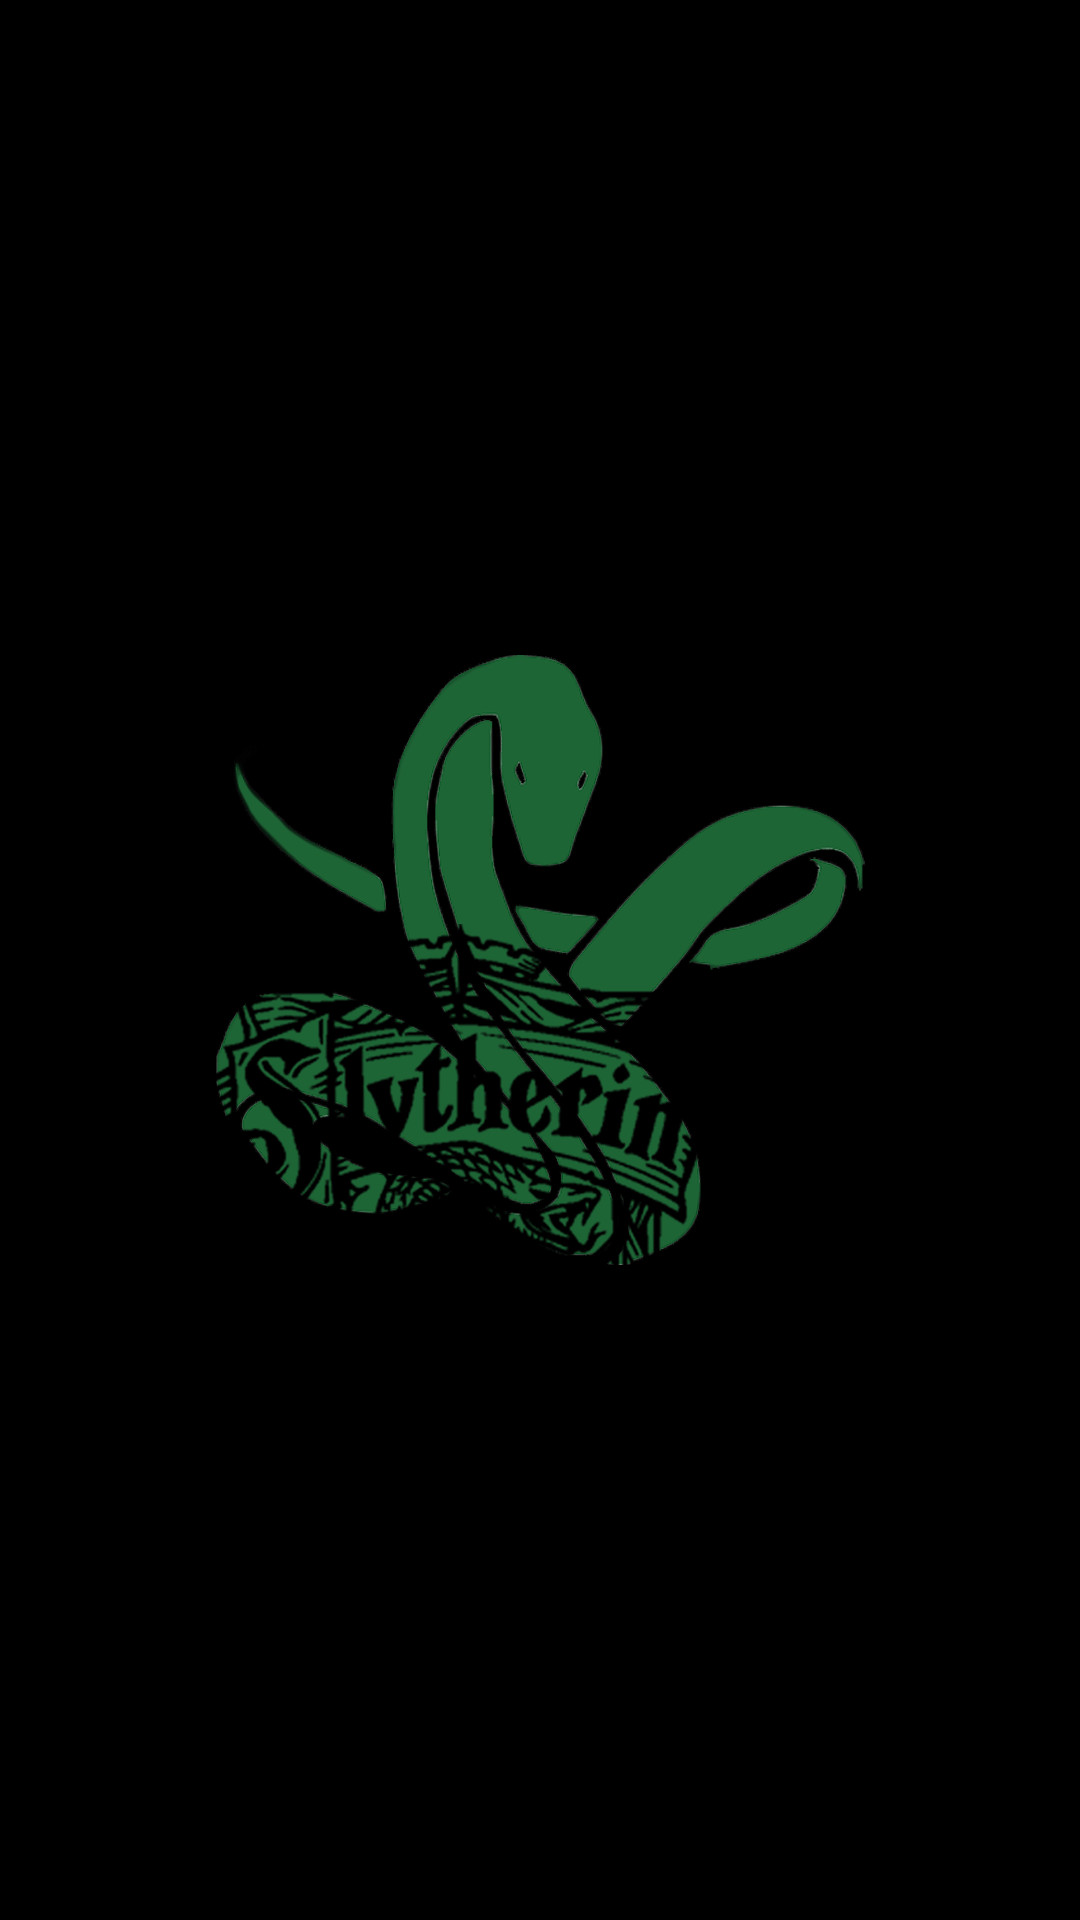 1080x1920 ... slytherin iphone 7 wallpaper 2017 live wallpaper hd ...